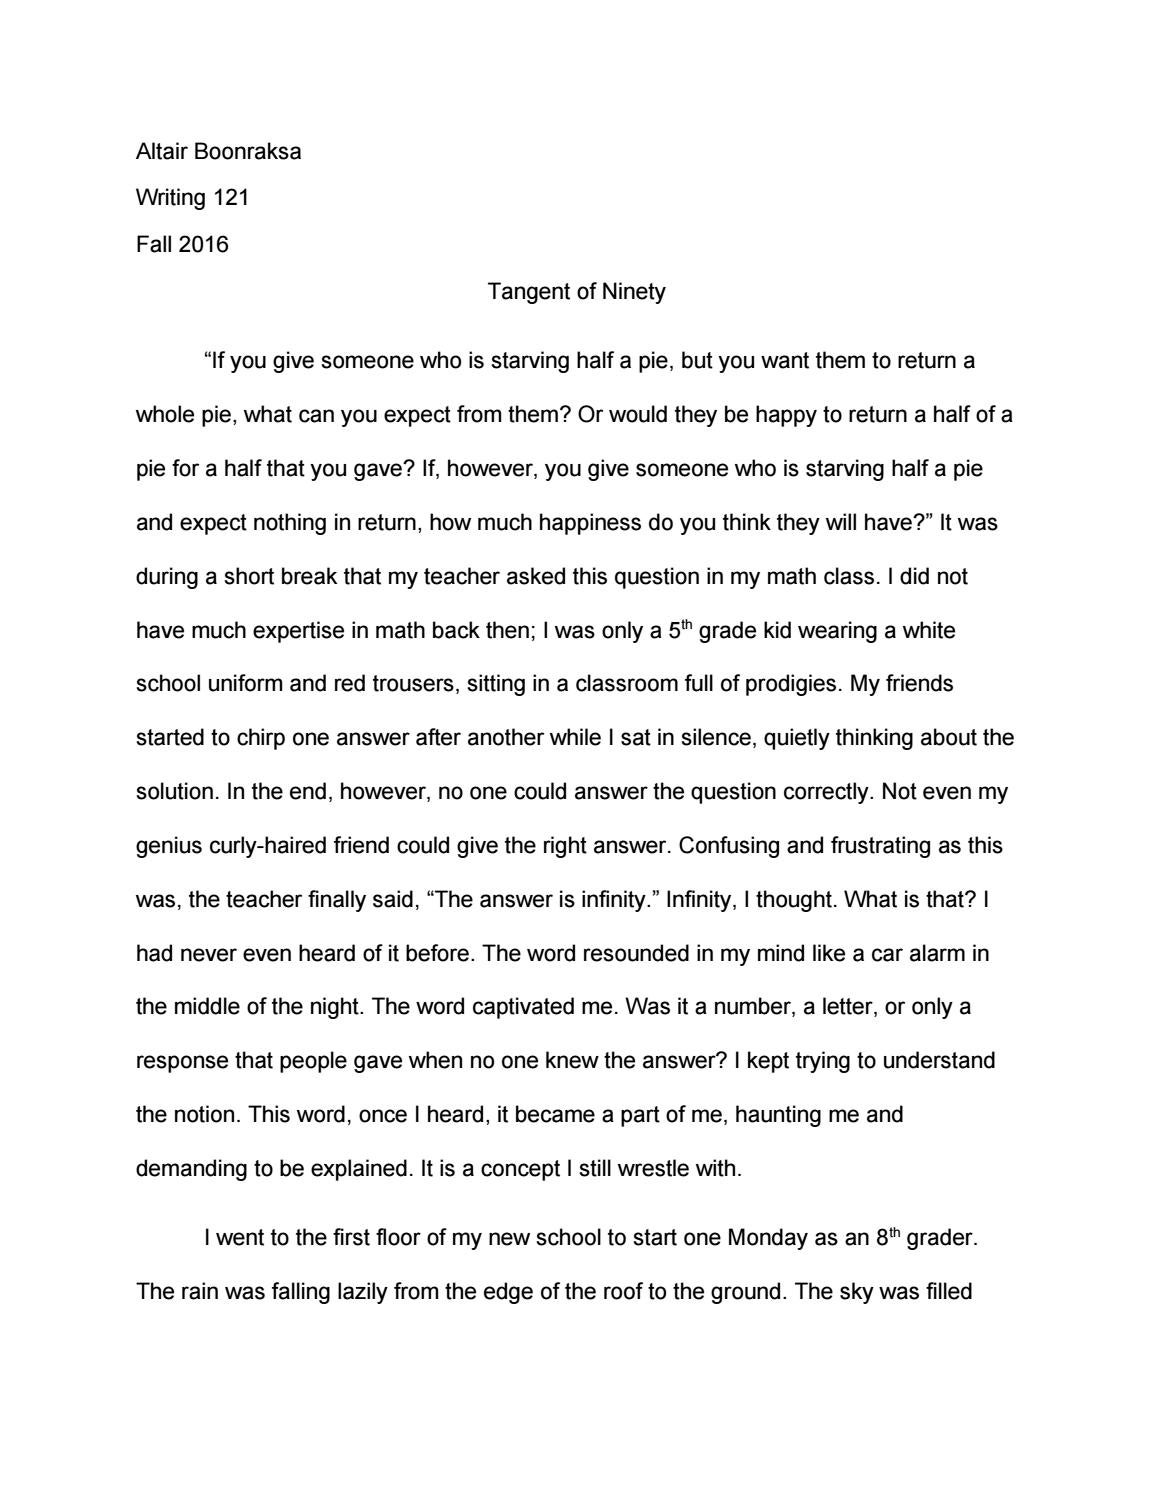 Simple Essays In English Love Or Money Essay Is Custom Writing Essay Really Safe Money Can Buy  Happiness Essay Can Locavores Synthesis Essay also Thesis Statement For Comparison Essay Academic Writers  Research Paper Online Custom Essay Writing Short  Essay On Healthy Foods